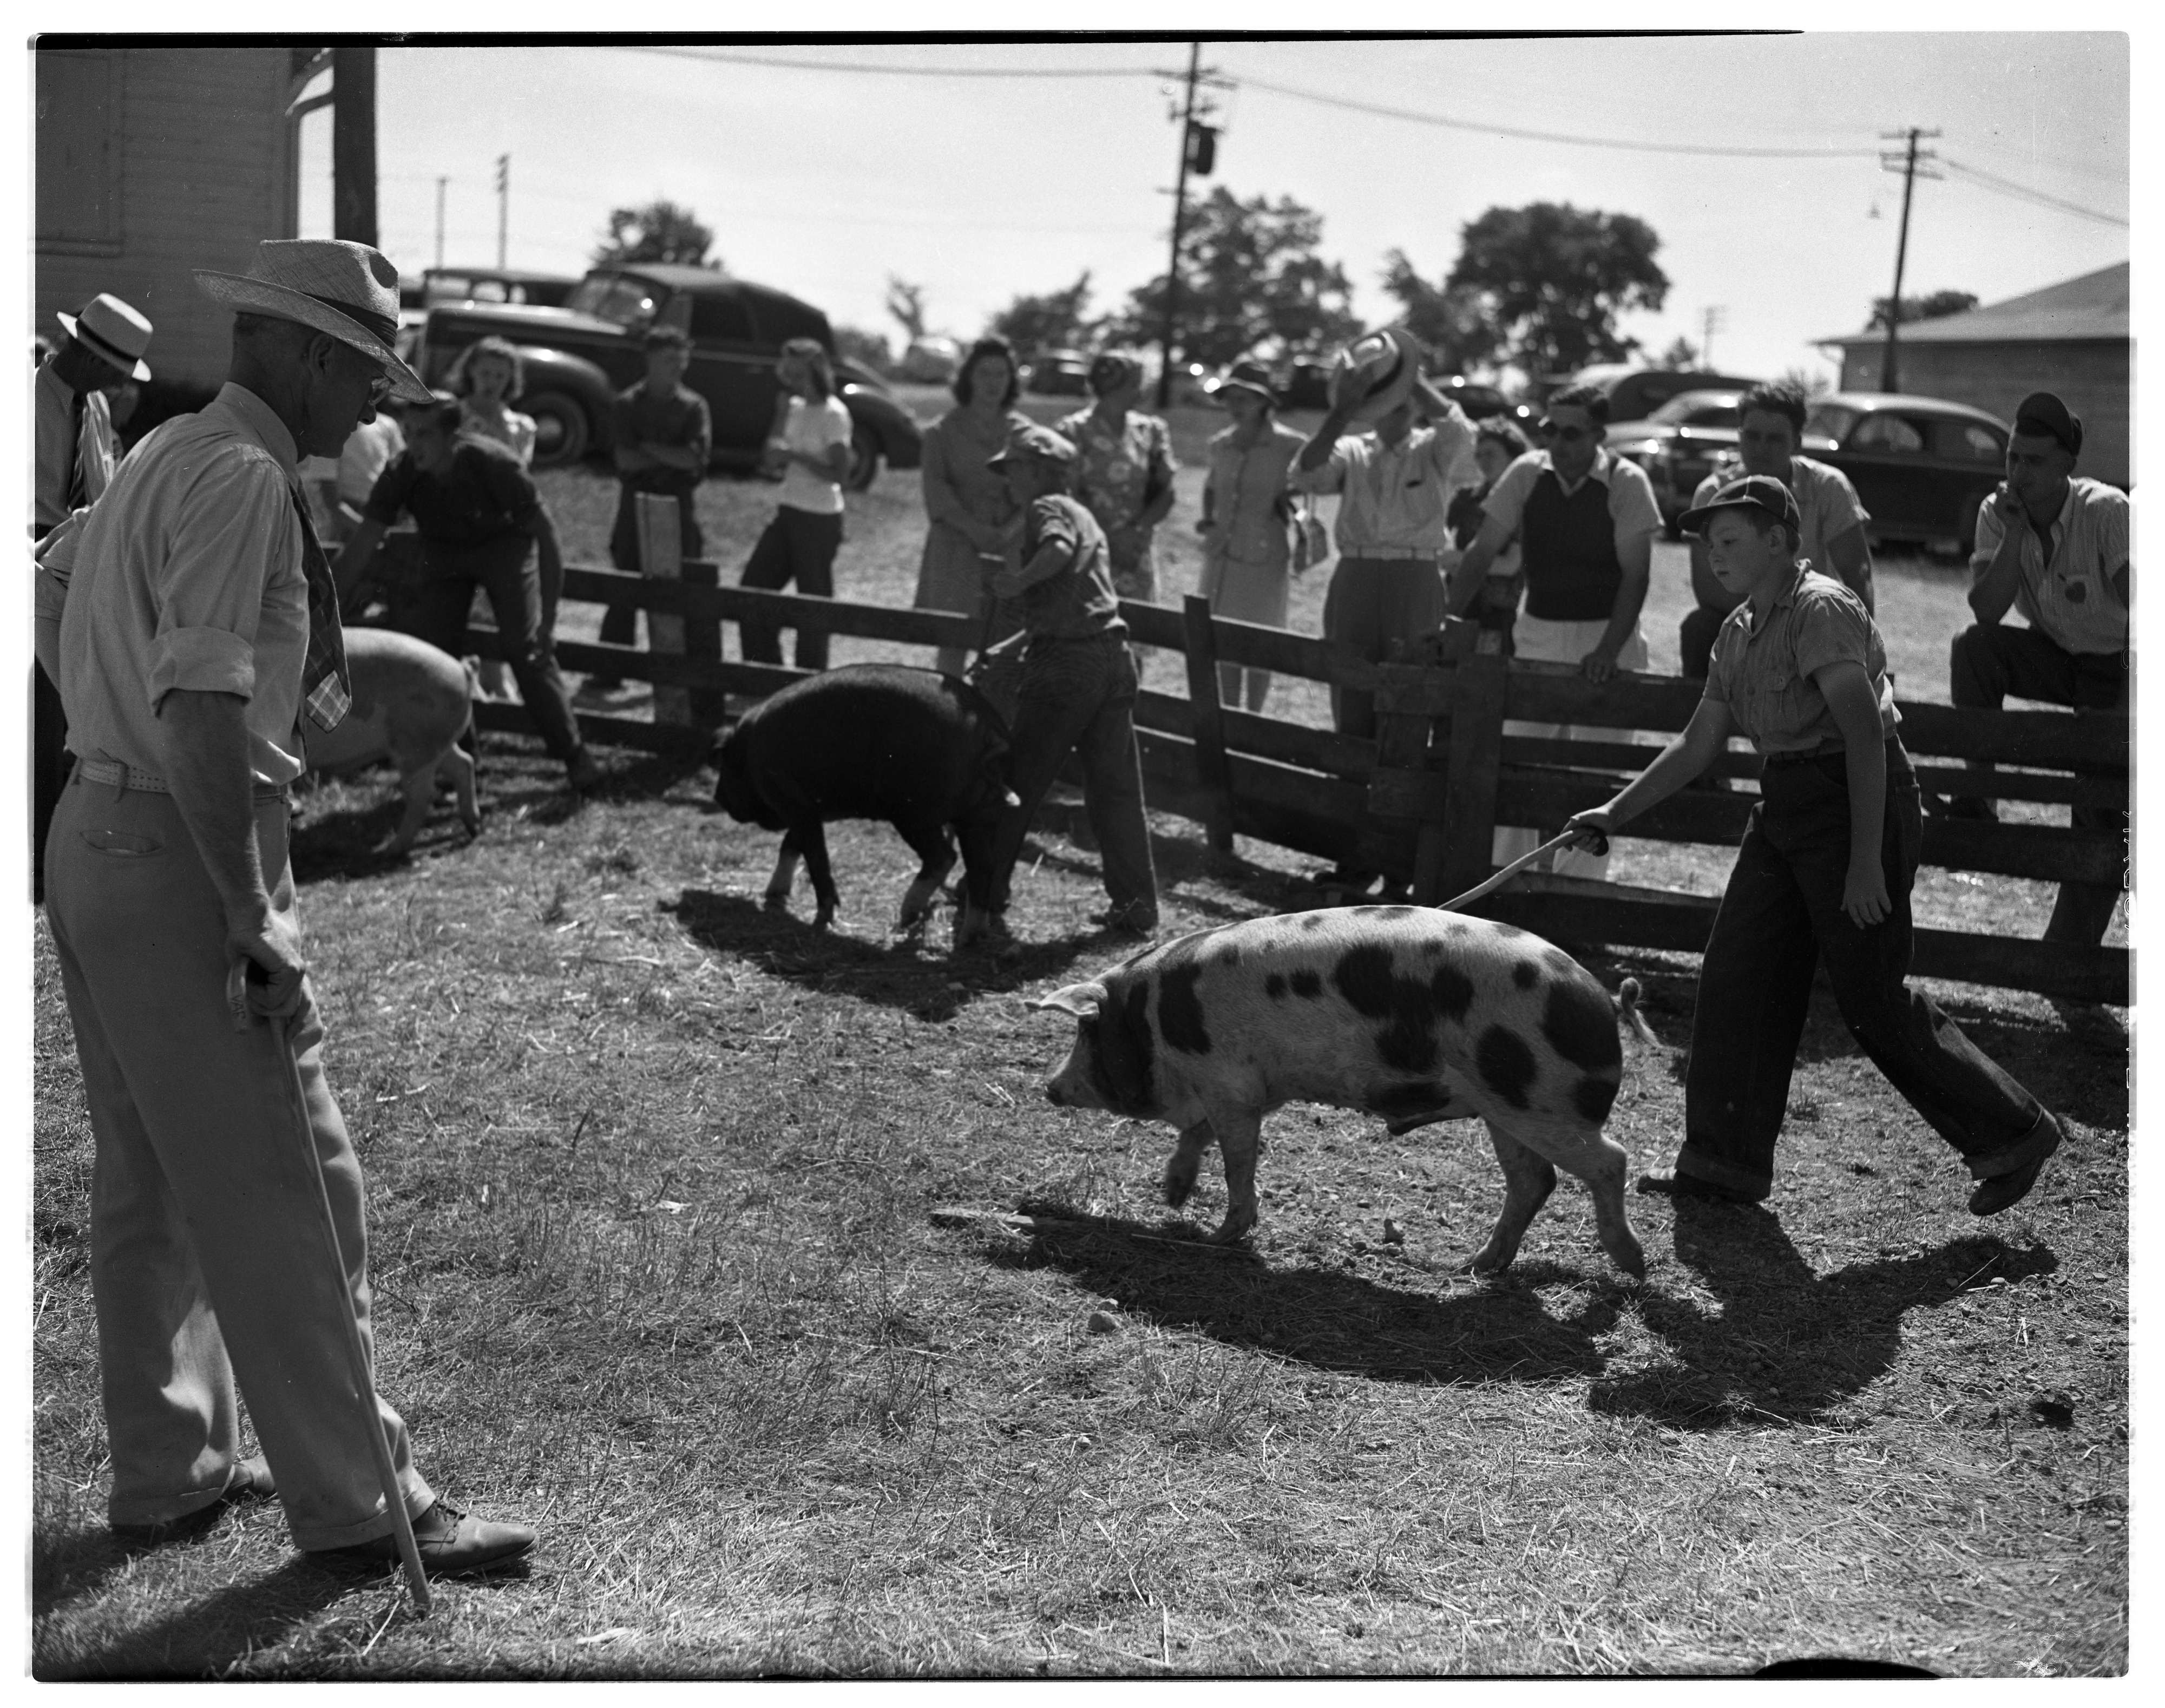 4-H Club Livestock Competition at County Fairgrounds, September 1943 image